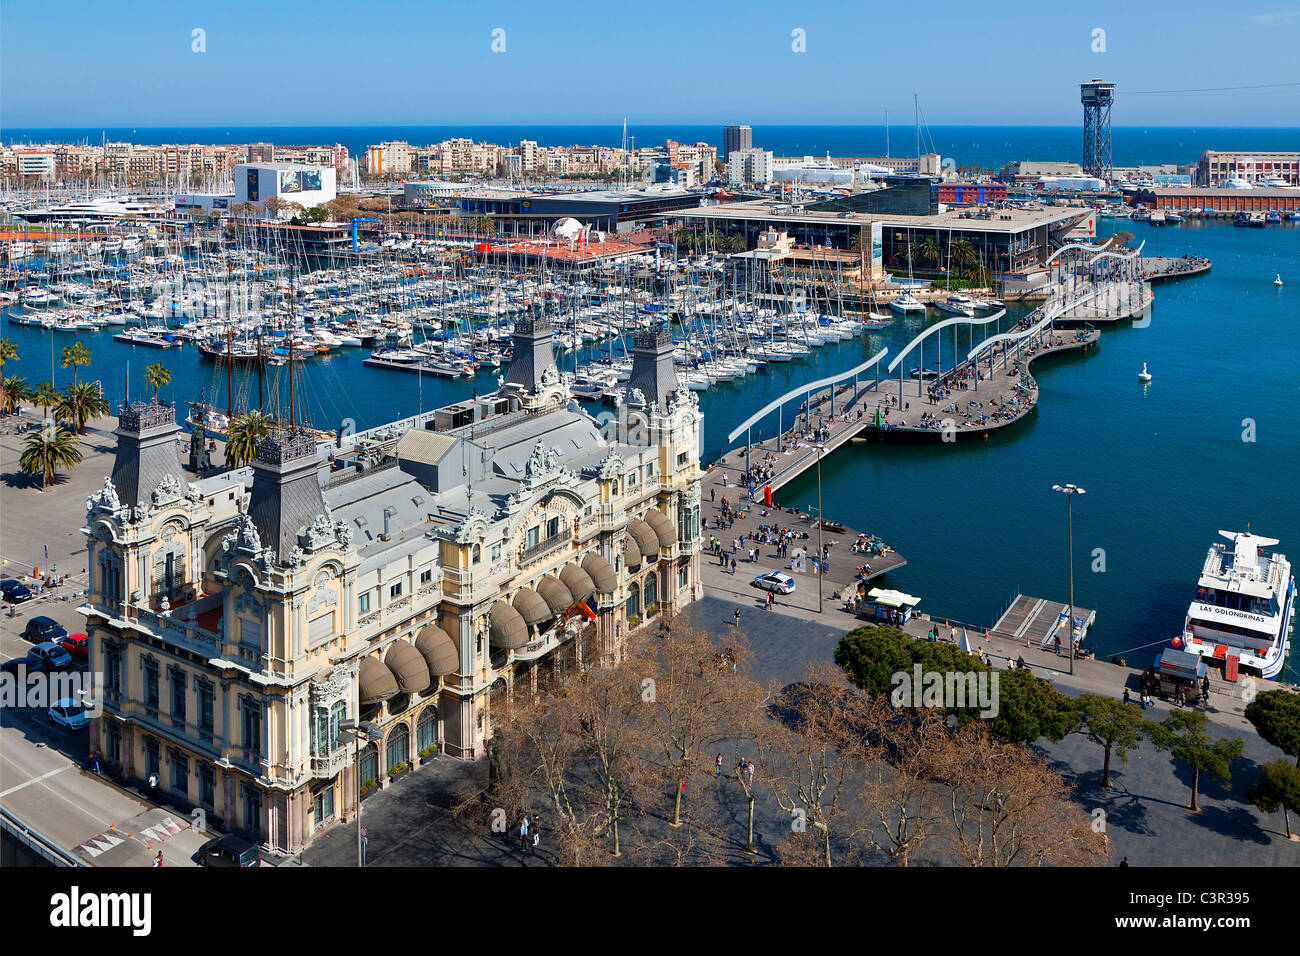 A view of Barcelona Harbor and Rambla del mar - Stock Image